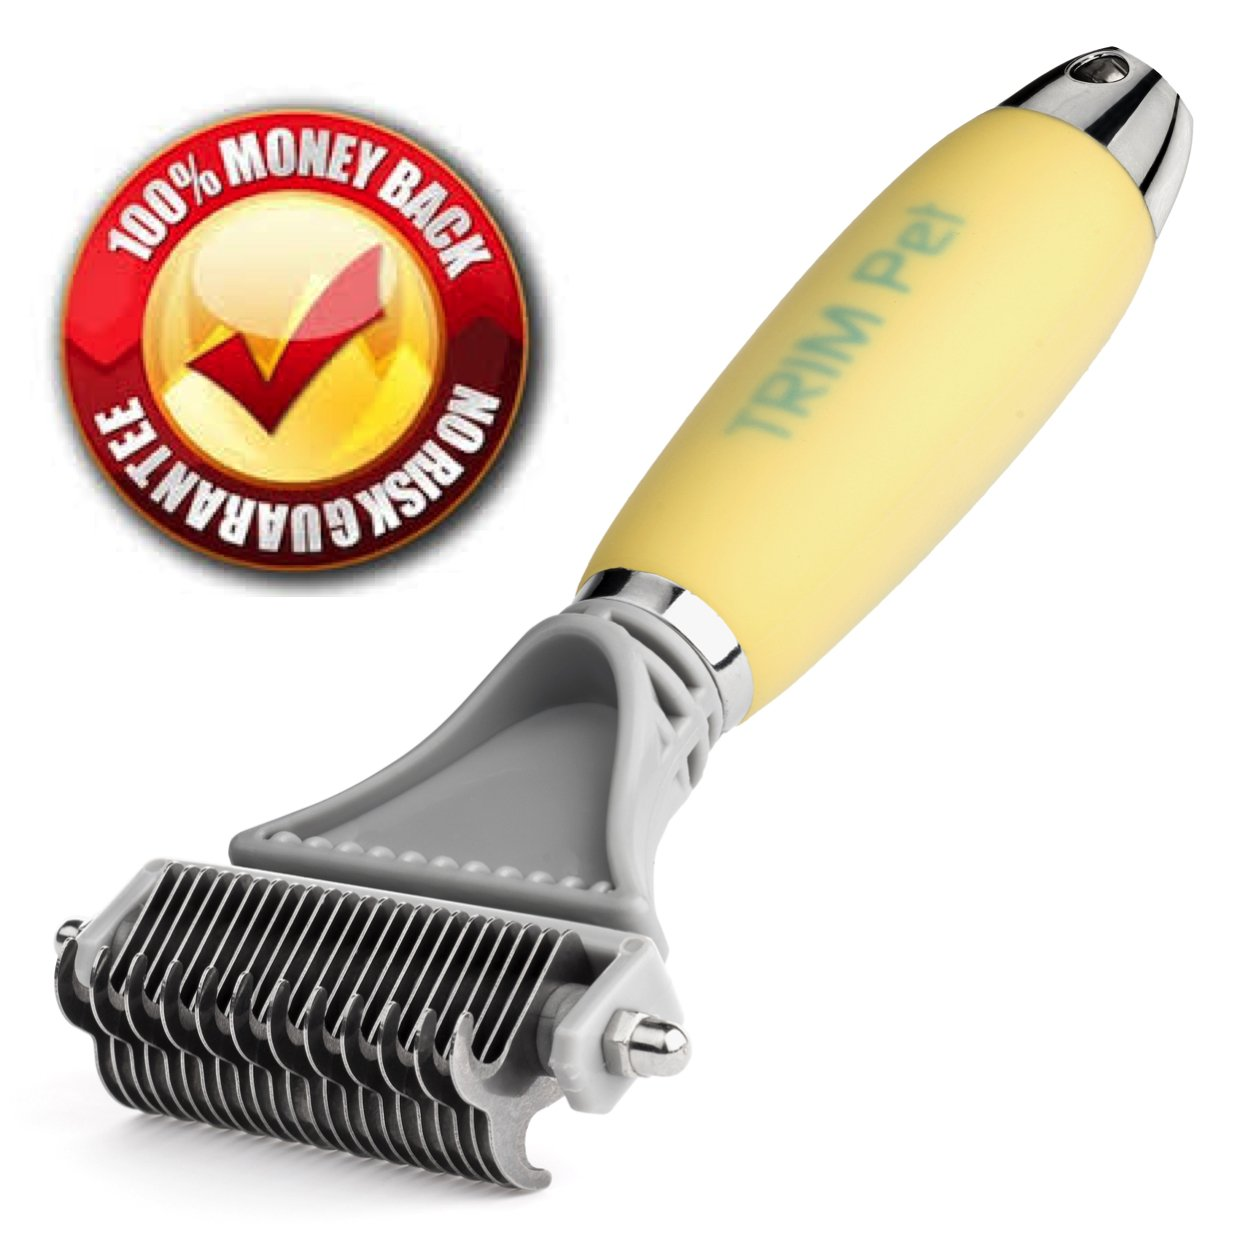 Dog Mat Remover Comb; Dematting Tool, Detangler & Deshedding Rake for Easy Undercoat Grooming; Large & Small Dogs, Puppy, Short & Longhaired Pets by Trim Pet (Image #1)